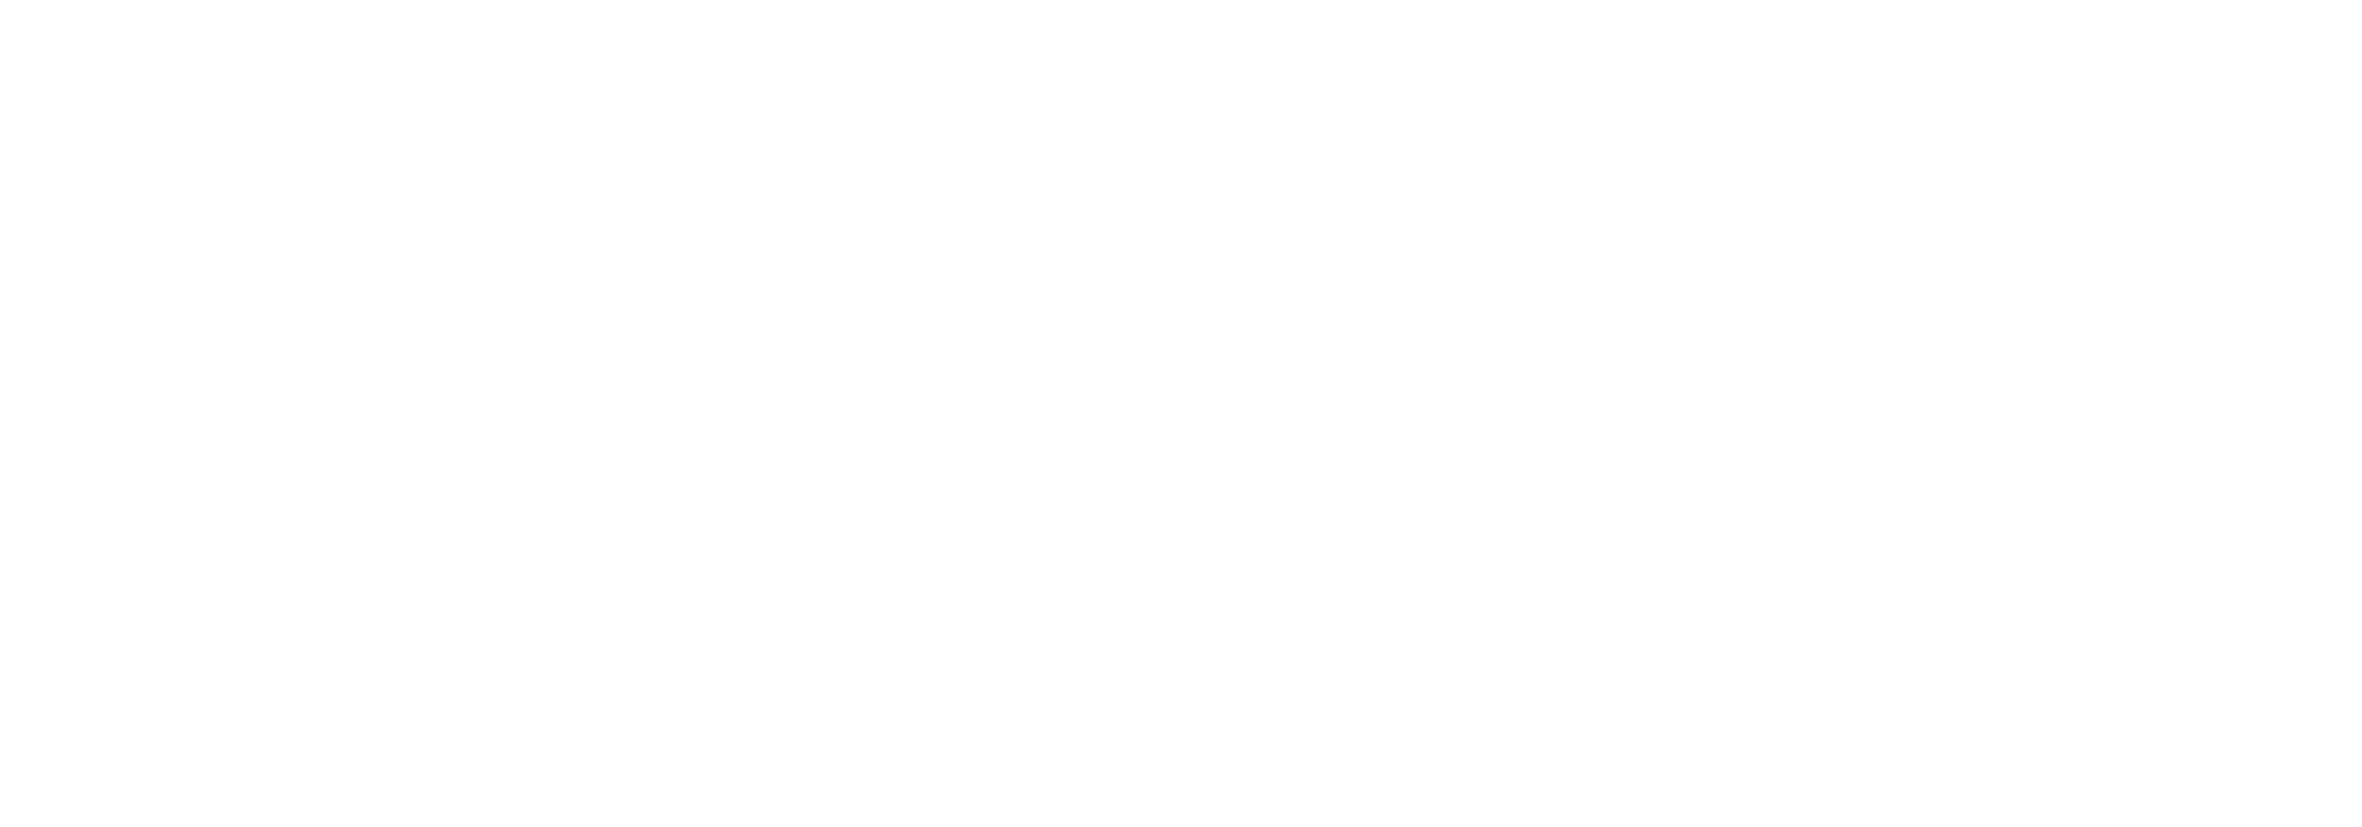 Forceis-white-01